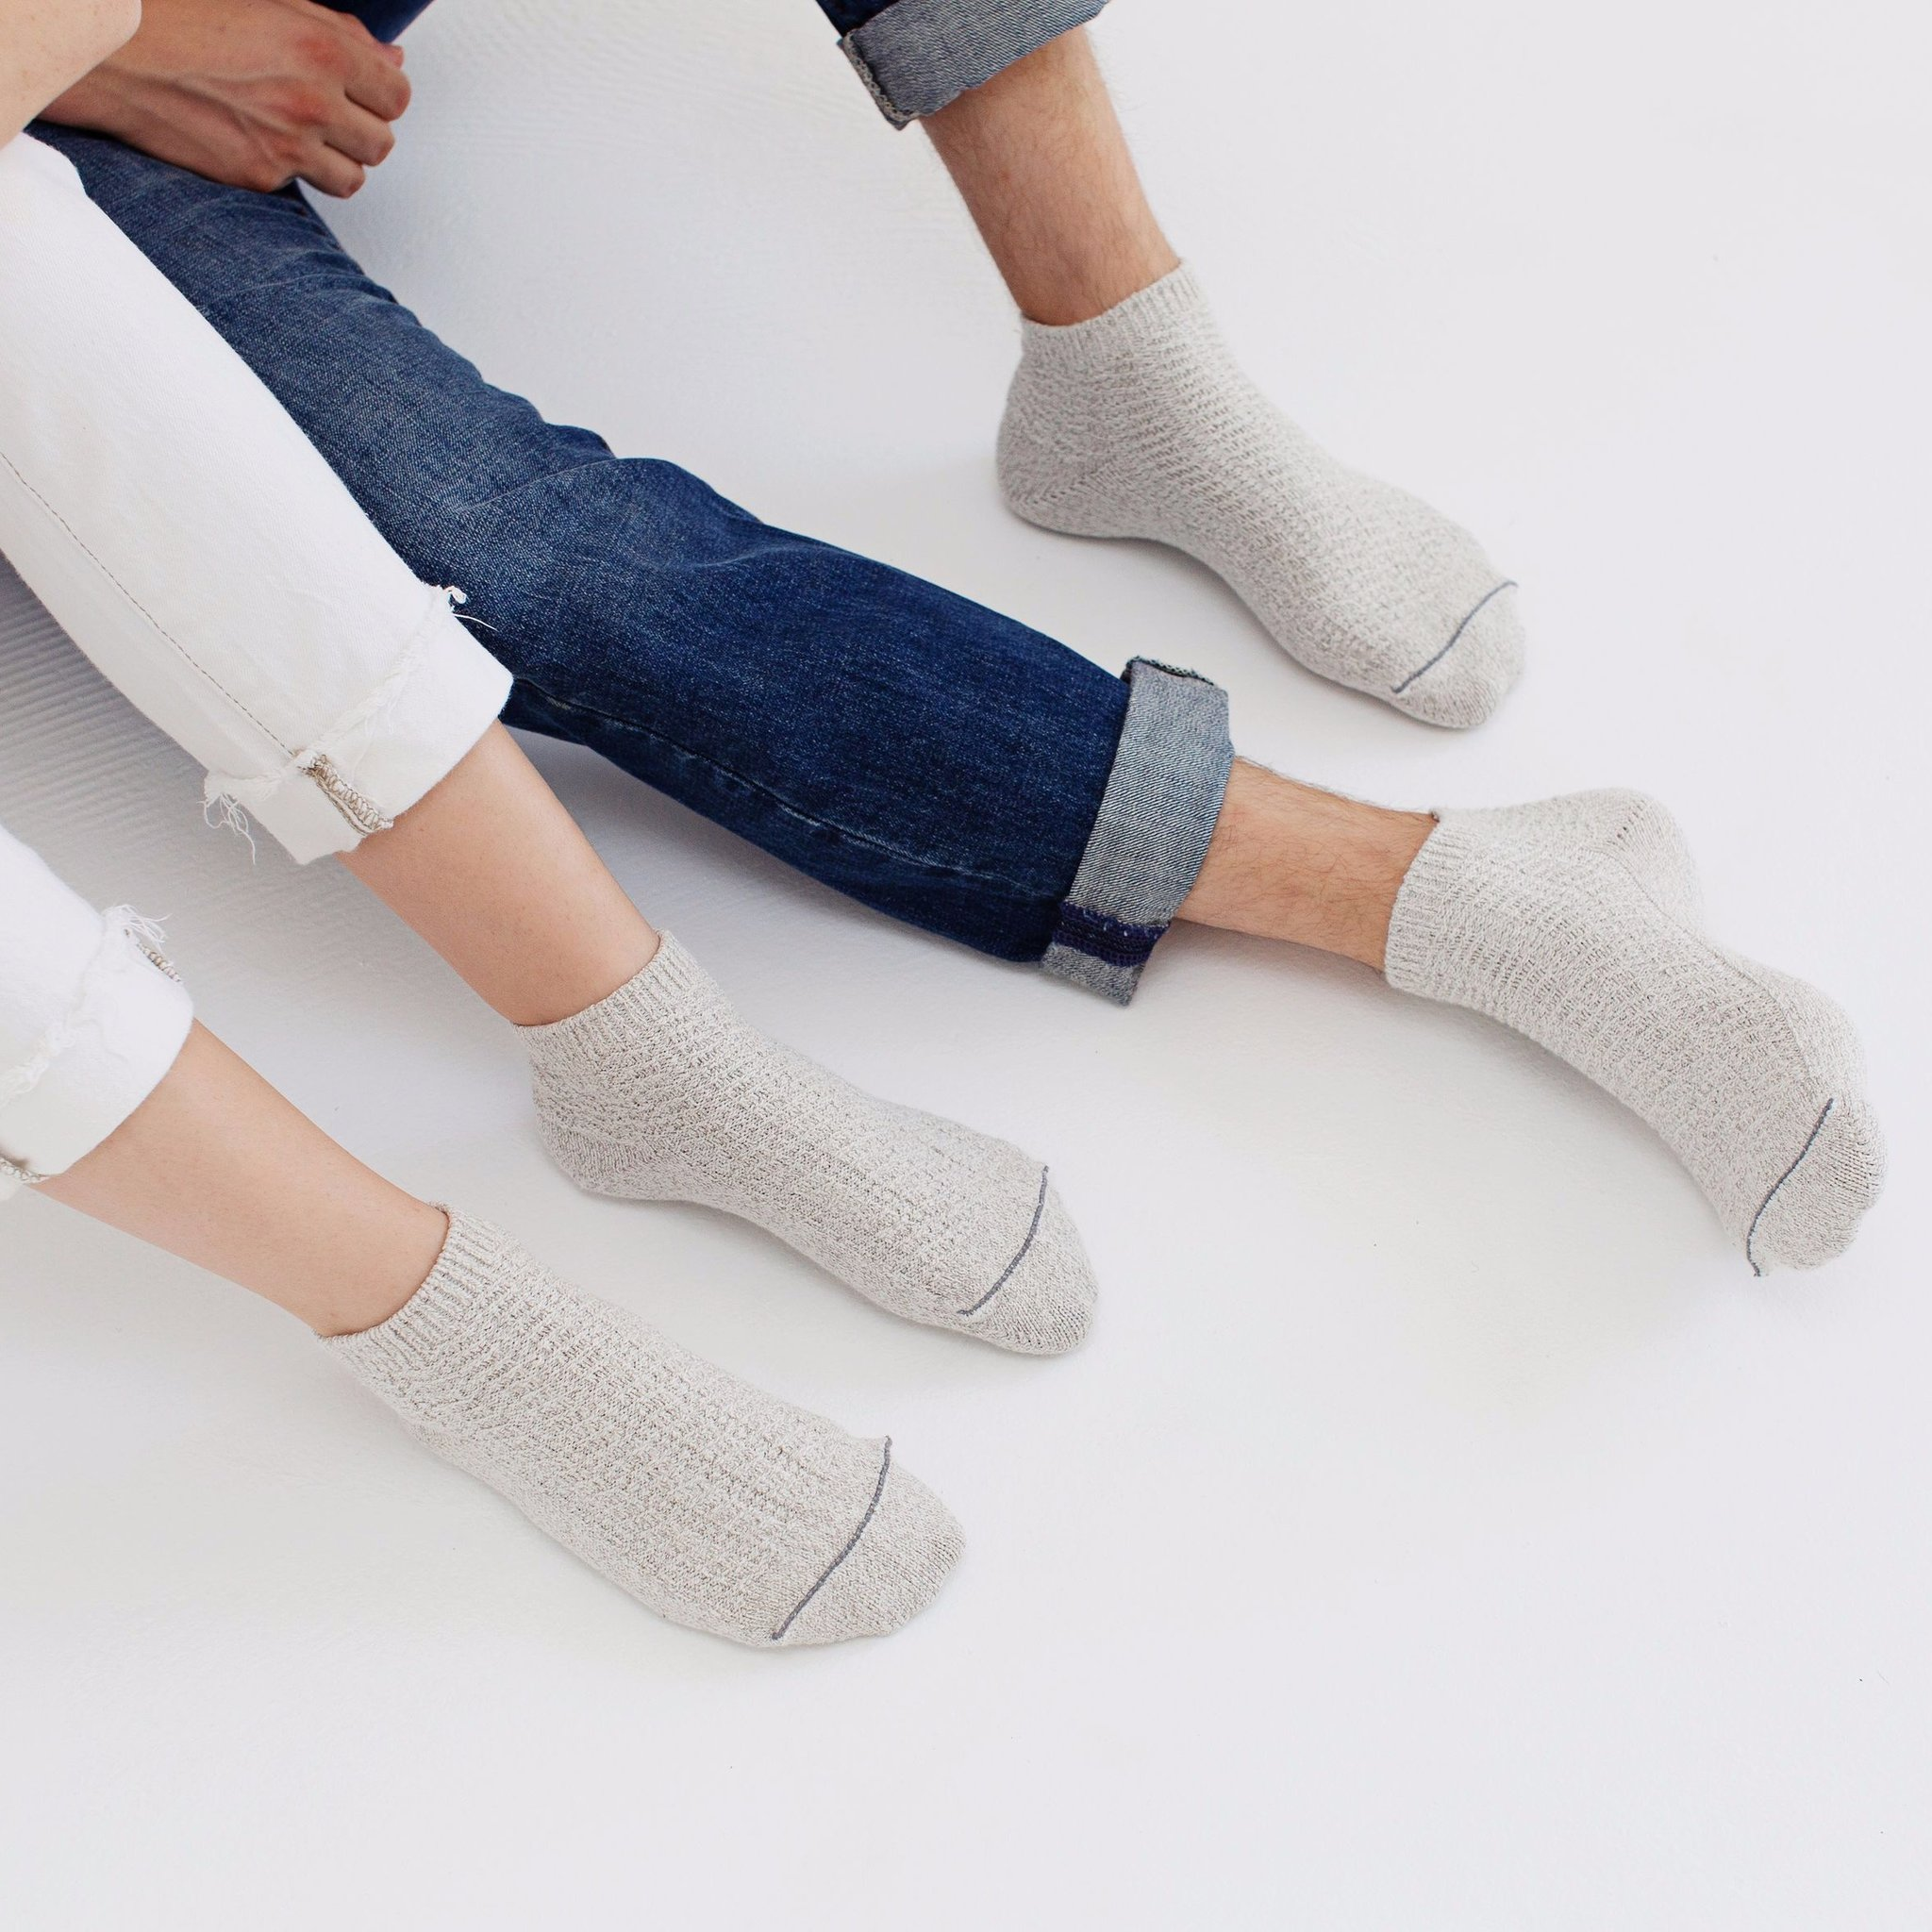 Soft Antibacterial Everyday Footie Socks by Silver Spun Goods